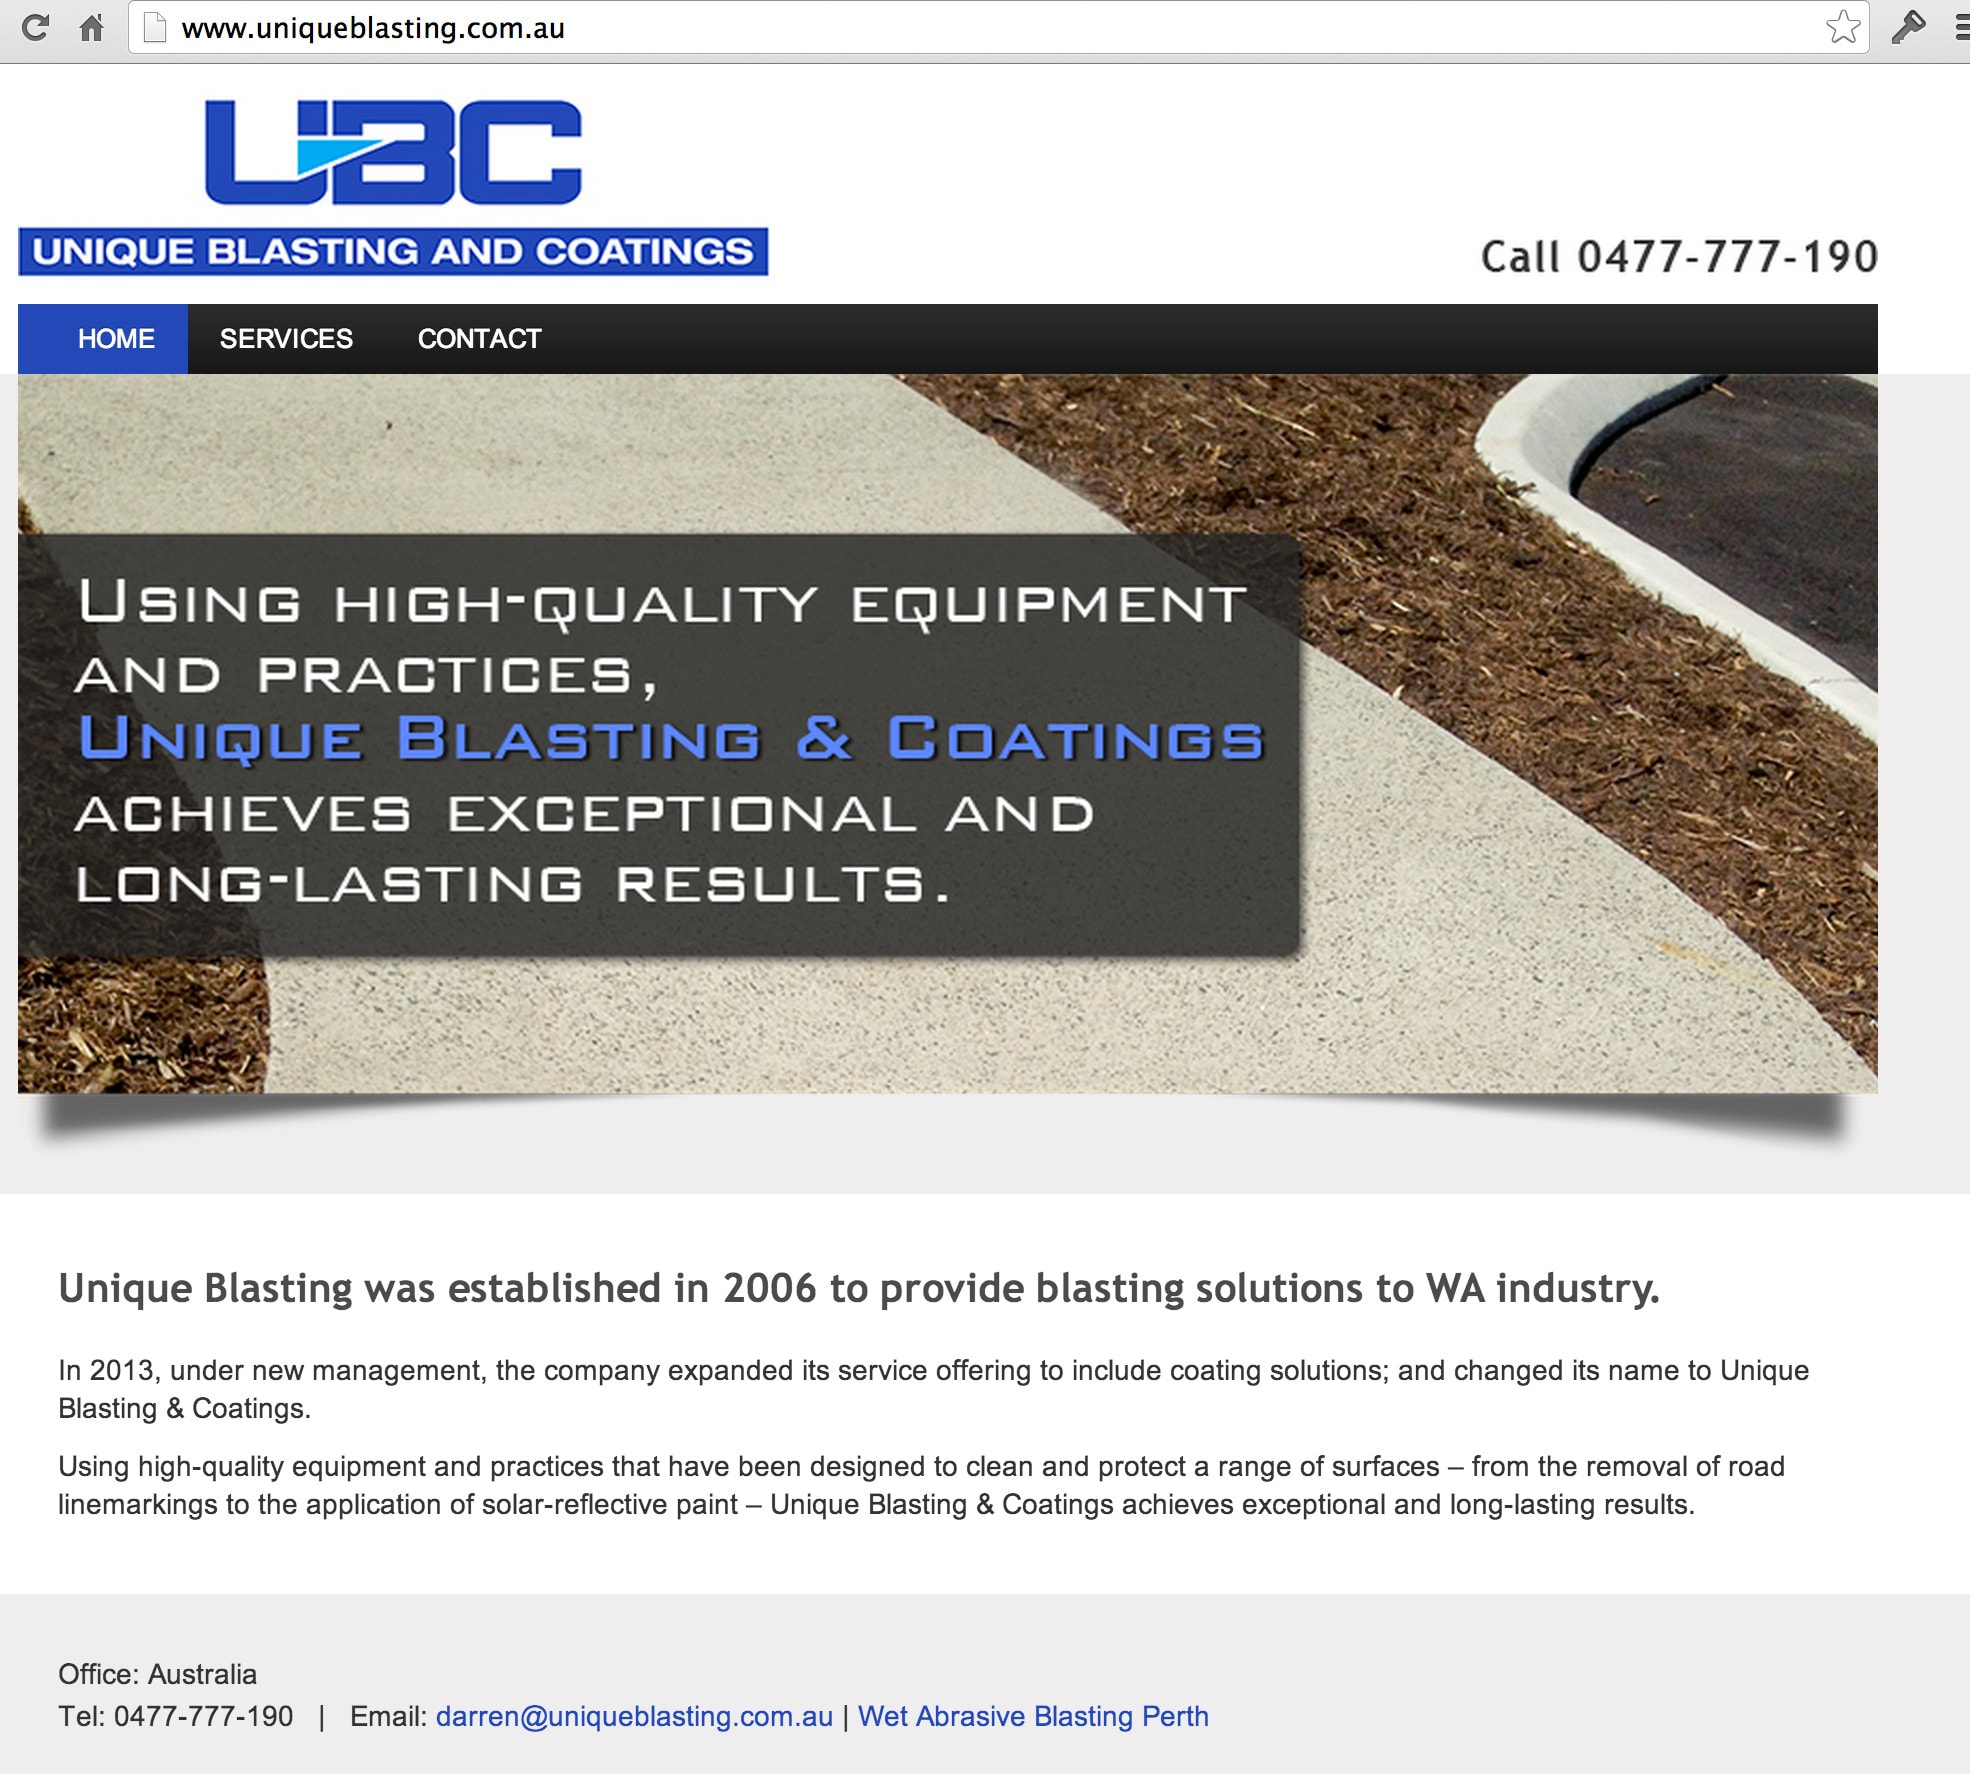 New Small Business website for Unique Blasting & Coatings in Perth